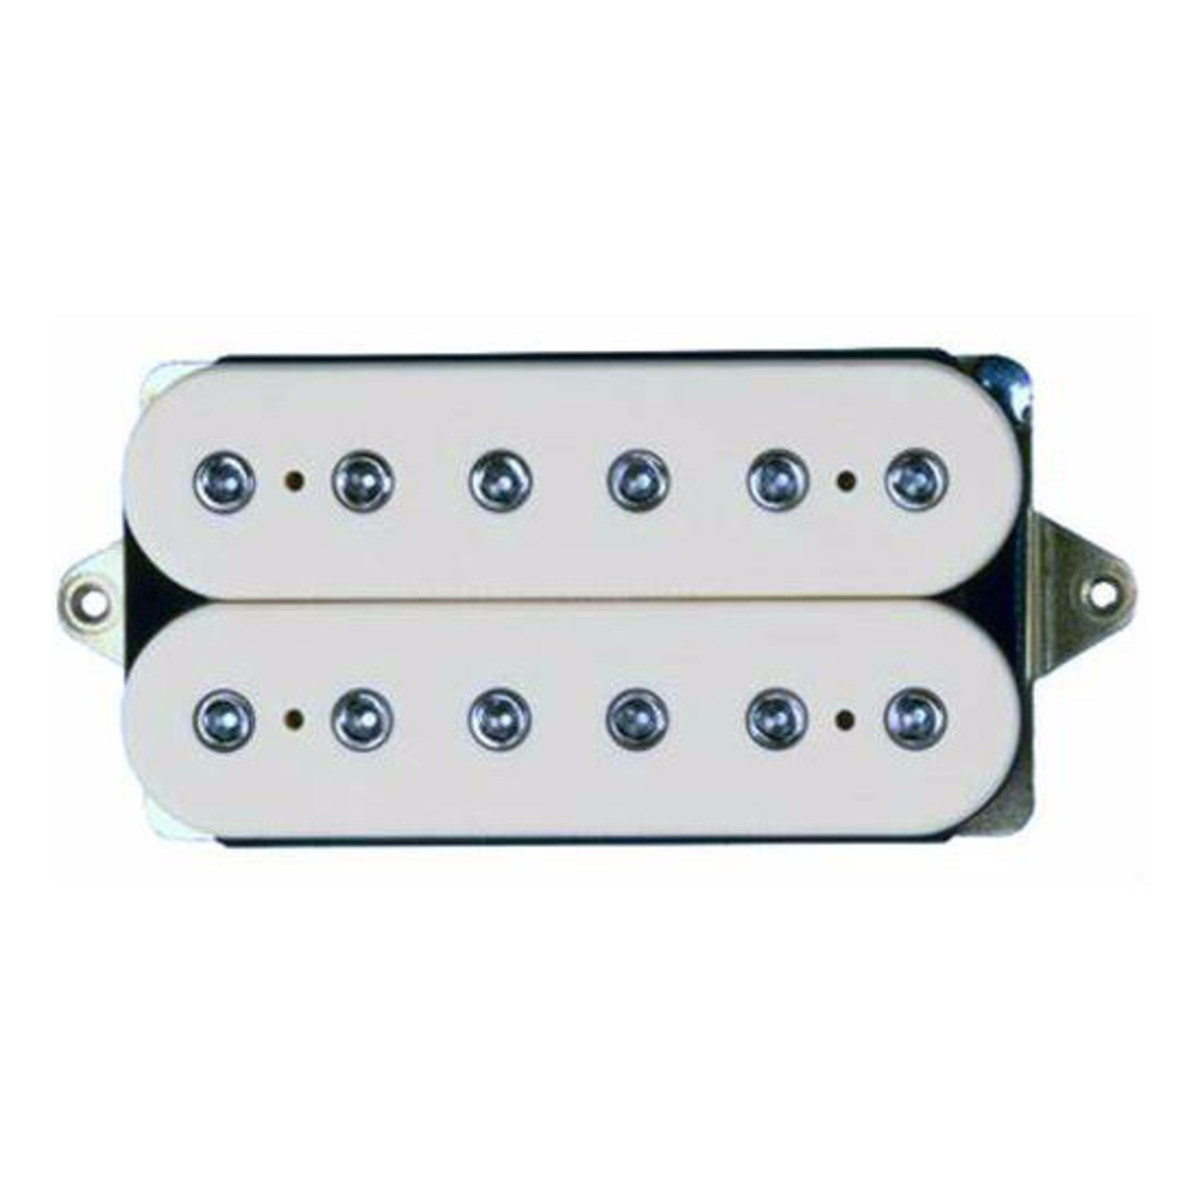 dimarzio dp100 super distortion f spaced humbucker pickup white at gear4music. Black Bedroom Furniture Sets. Home Design Ideas